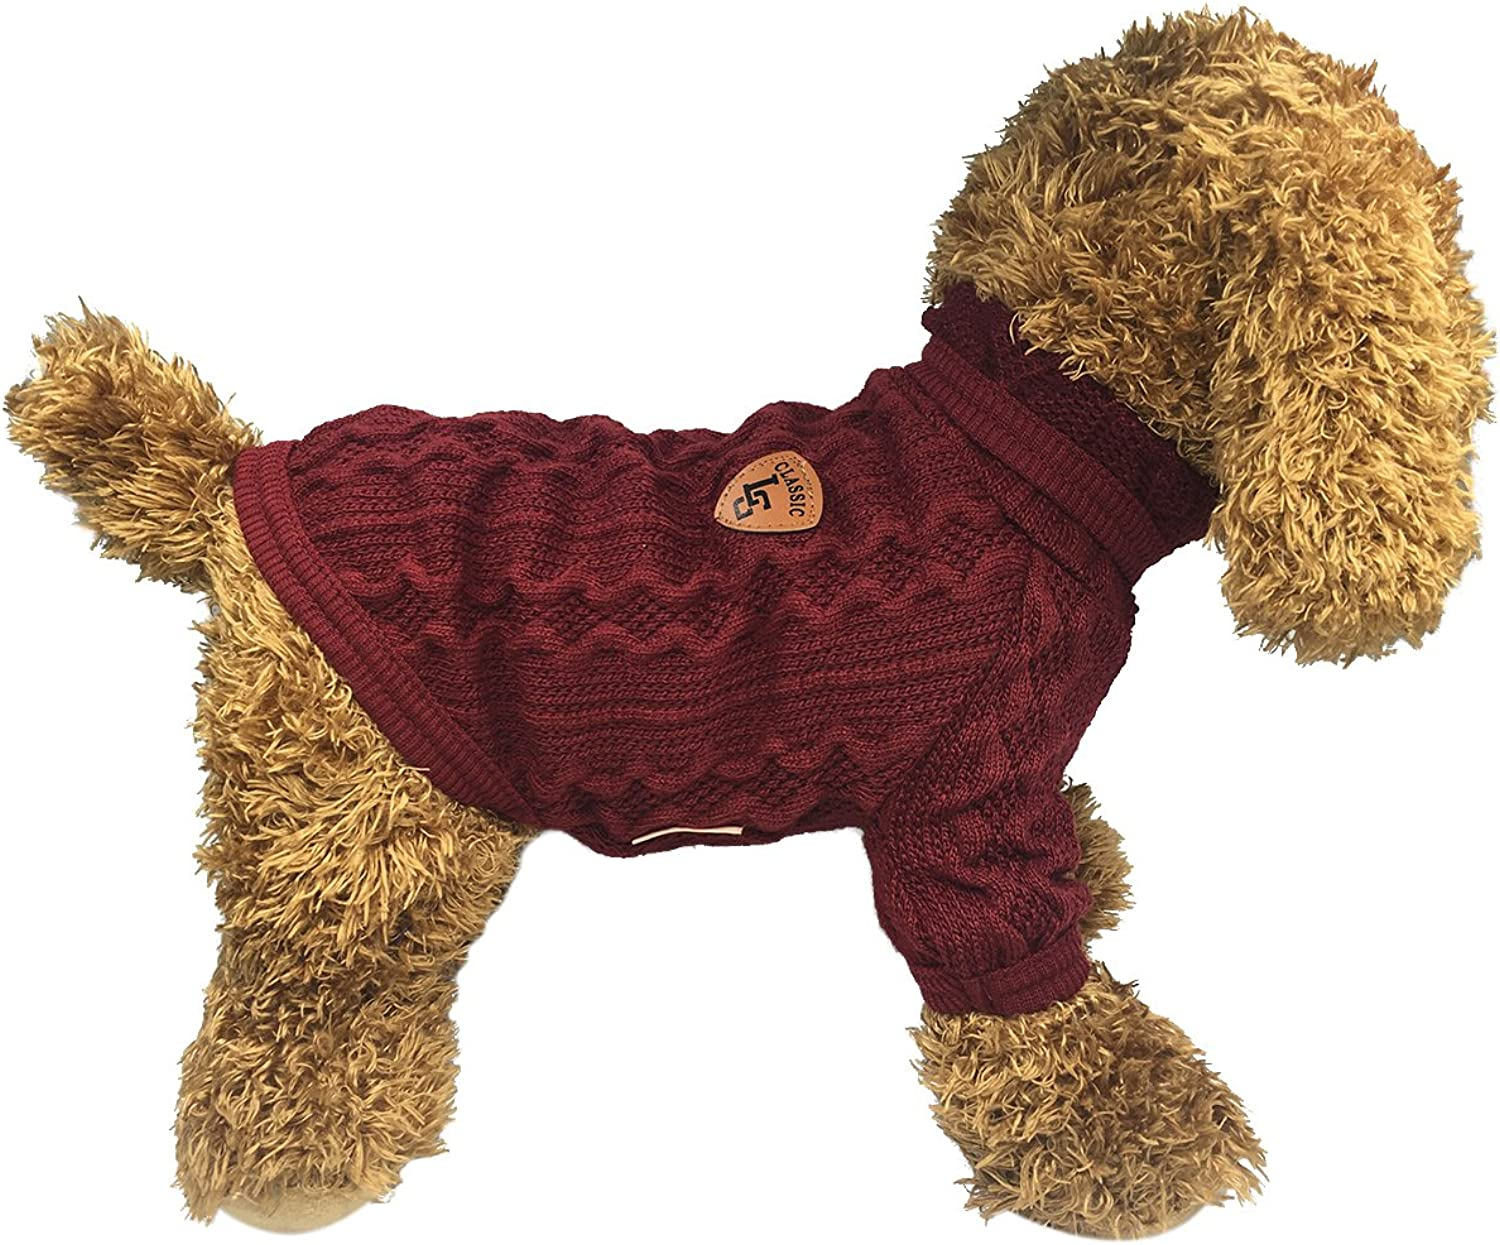 BONDOGLAND Pet Sweaters Small Dogs Cats Winter Coats Clothes,Red 9.8